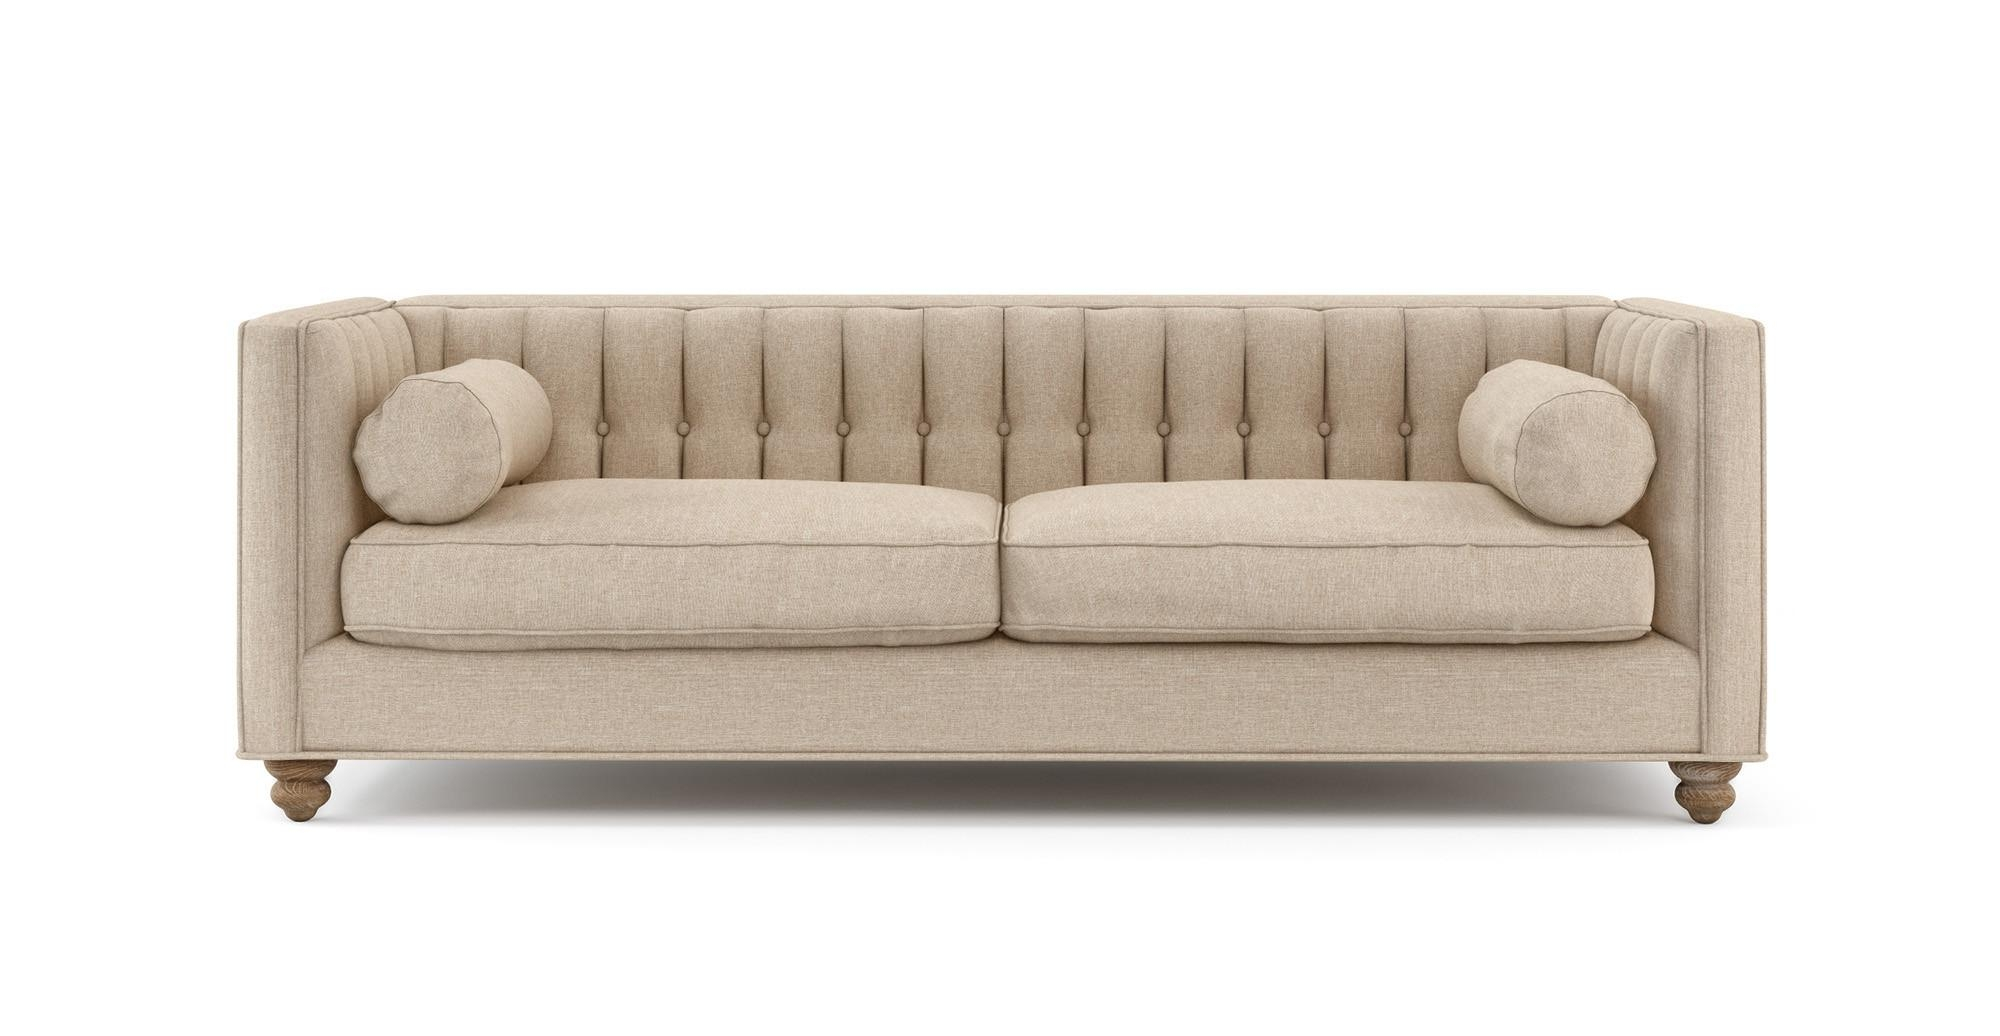 Three Seater Sofa 15 With Three Seater Sofa | Jinanhongyu Within 3 Seater Sofas For Sale (Image 19 of 21)